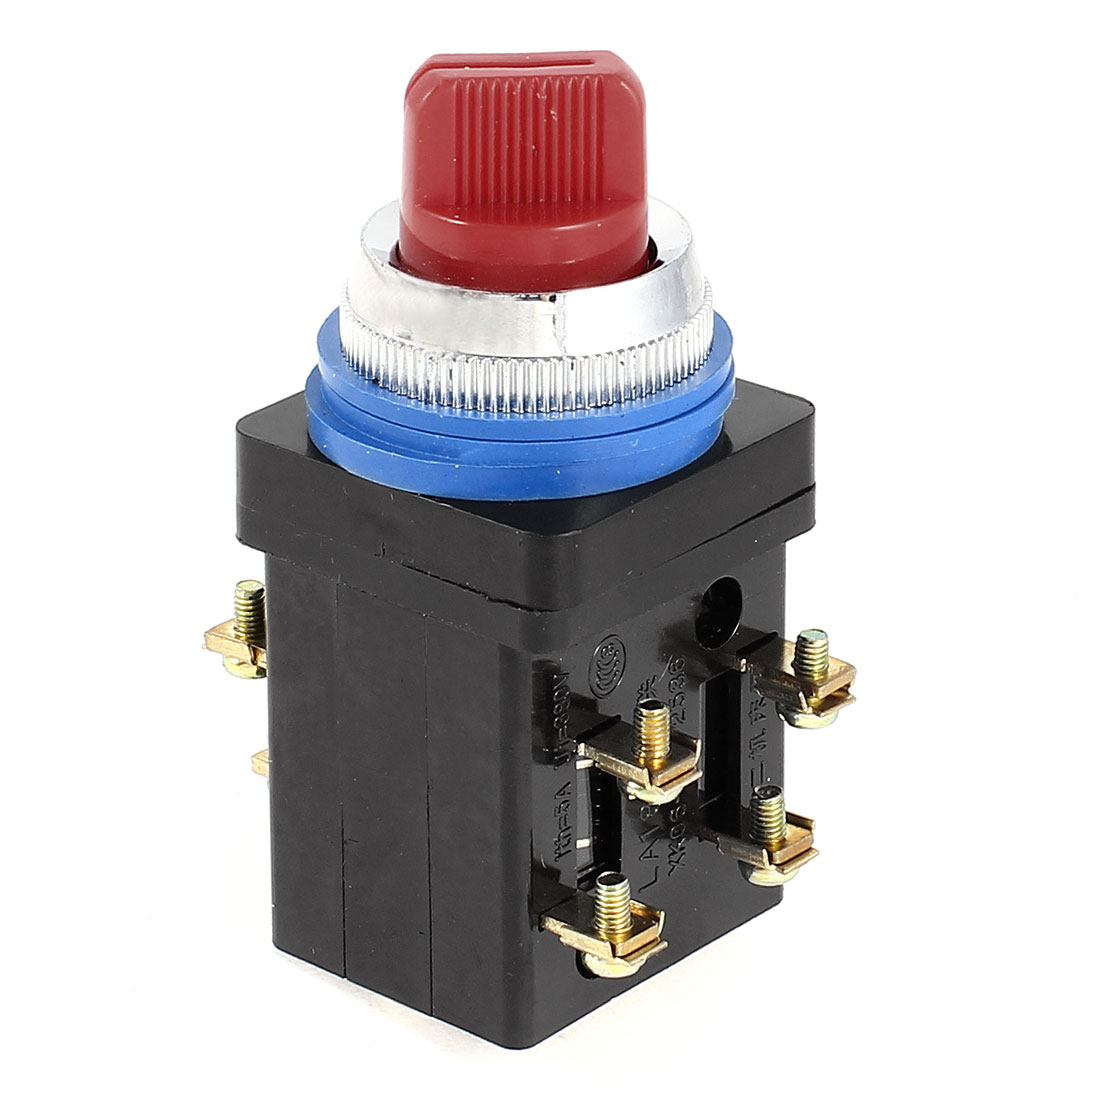 Electric LA18-22X 2 3 Position 2NO+2NC Rotary Knob Selector Switch AC 380V 5A